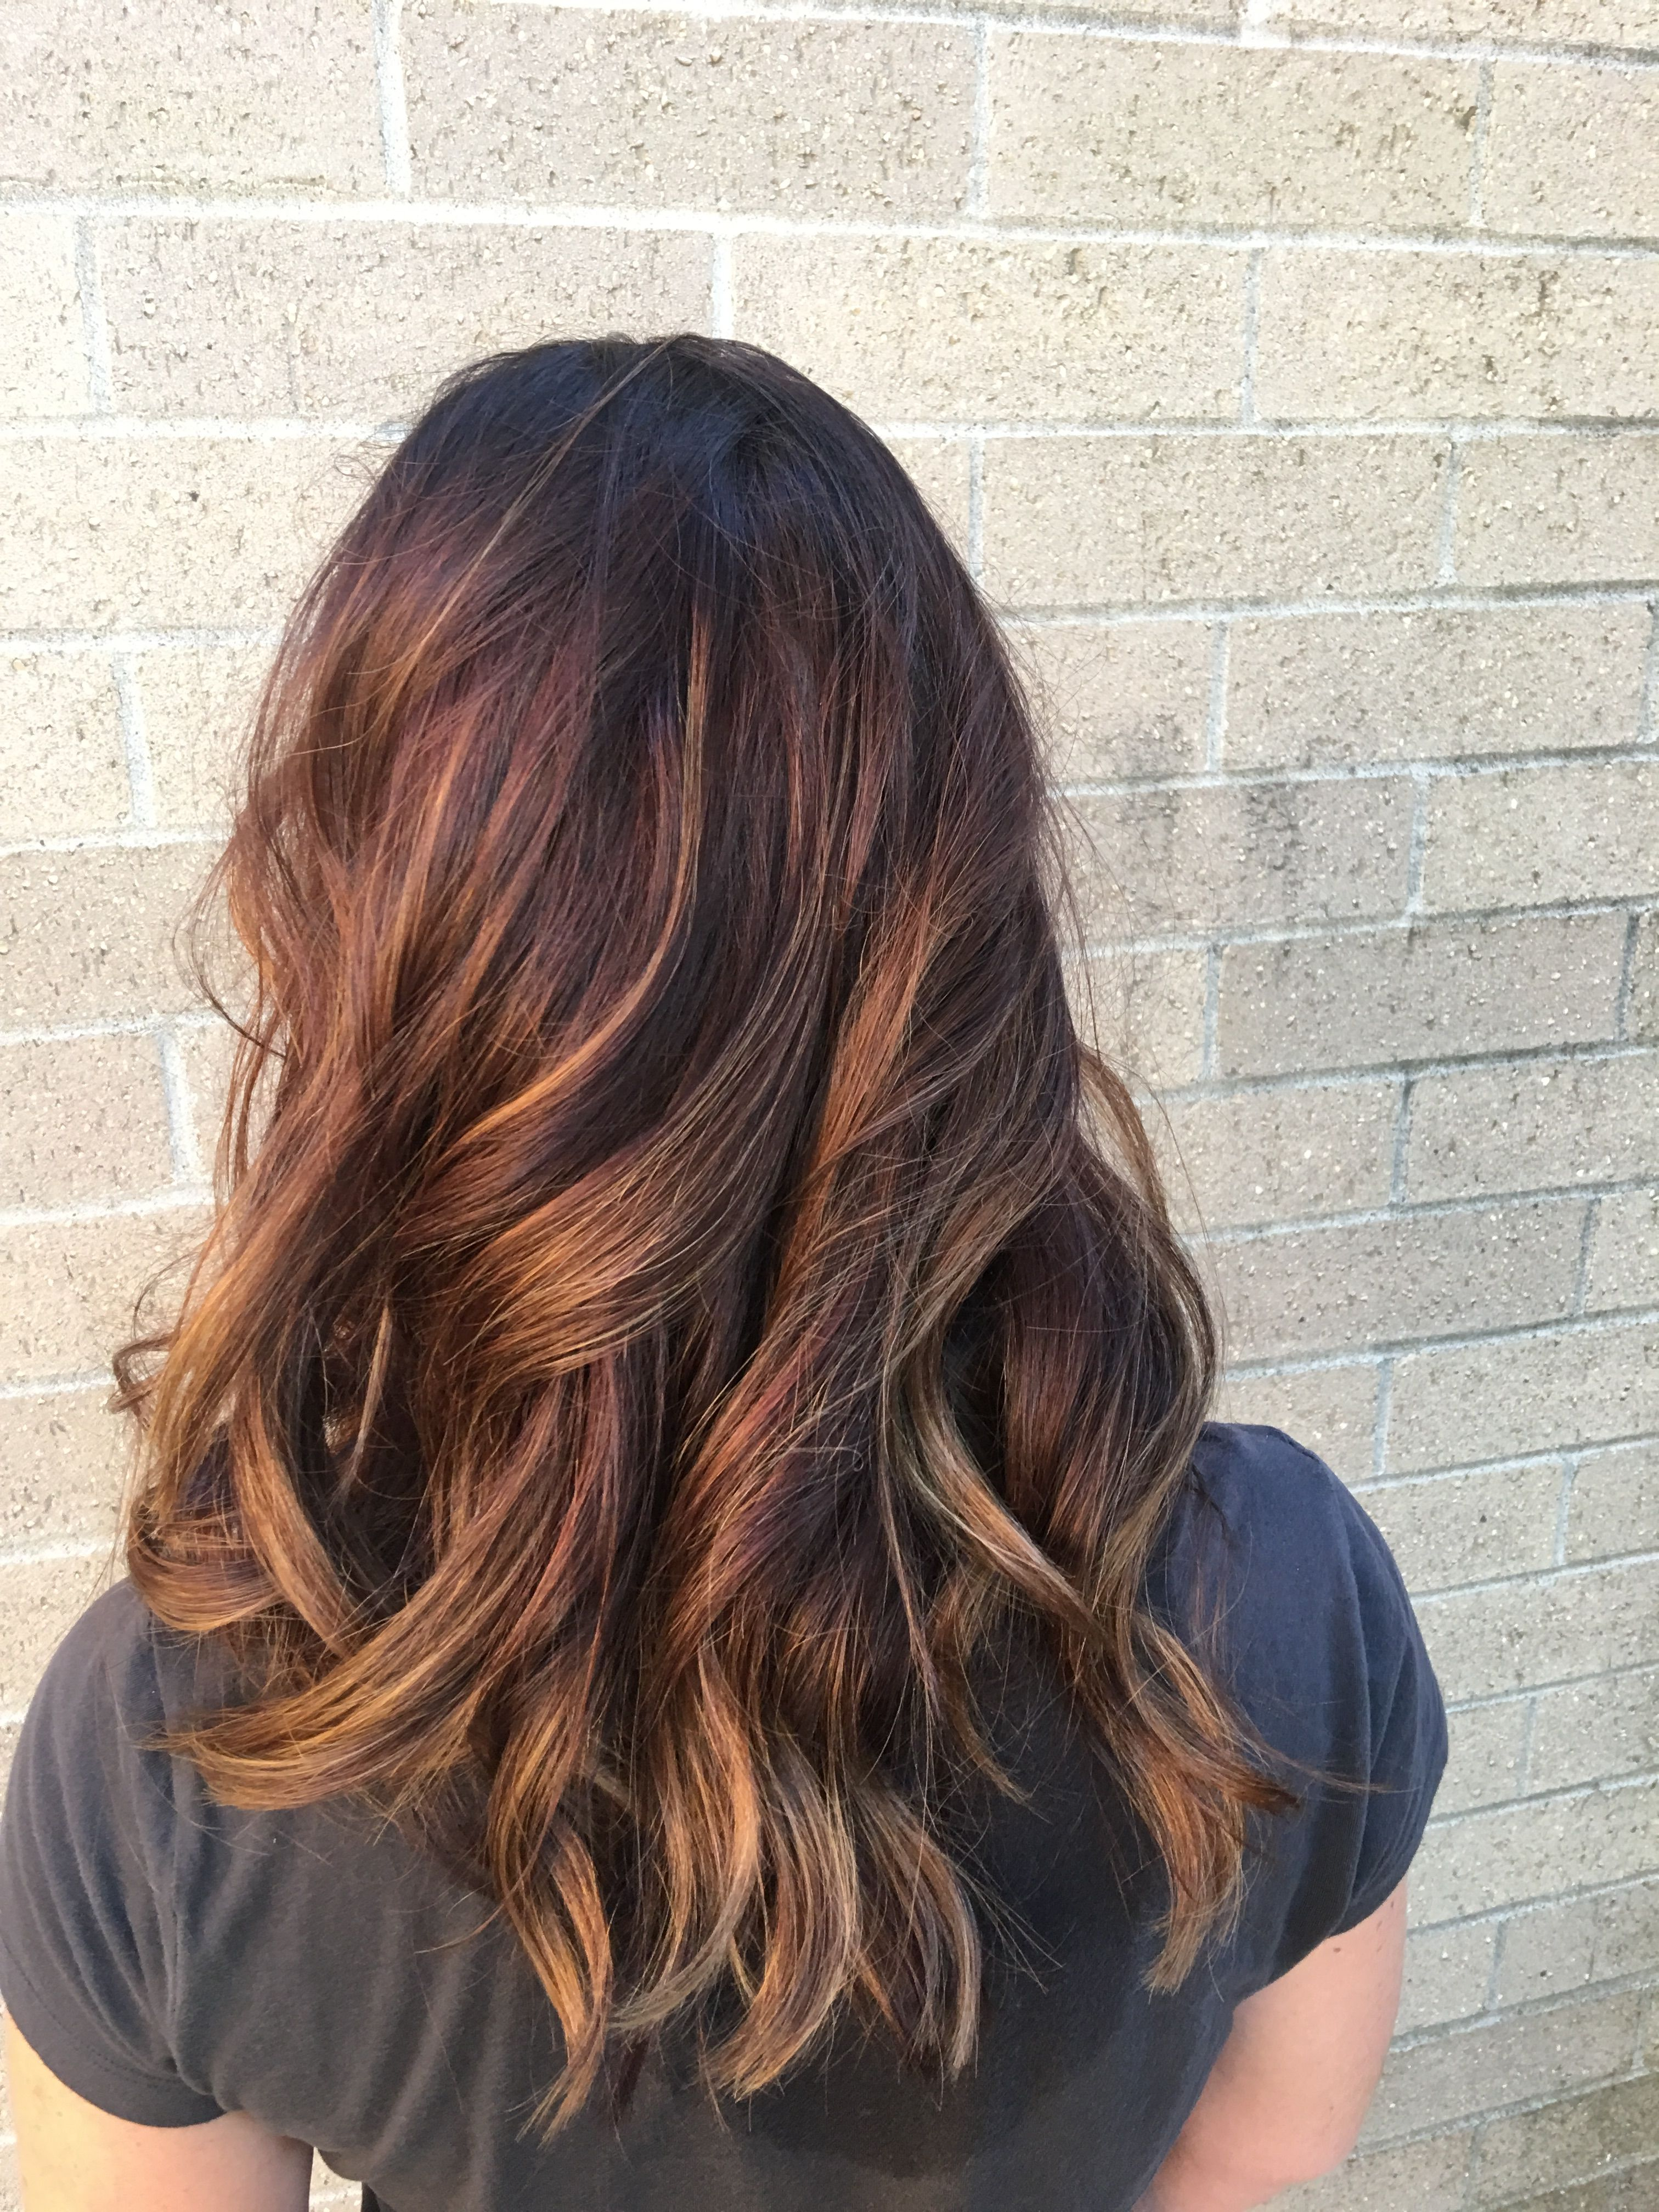 Pin By Danielle On Color Is What I Do Hair By Me